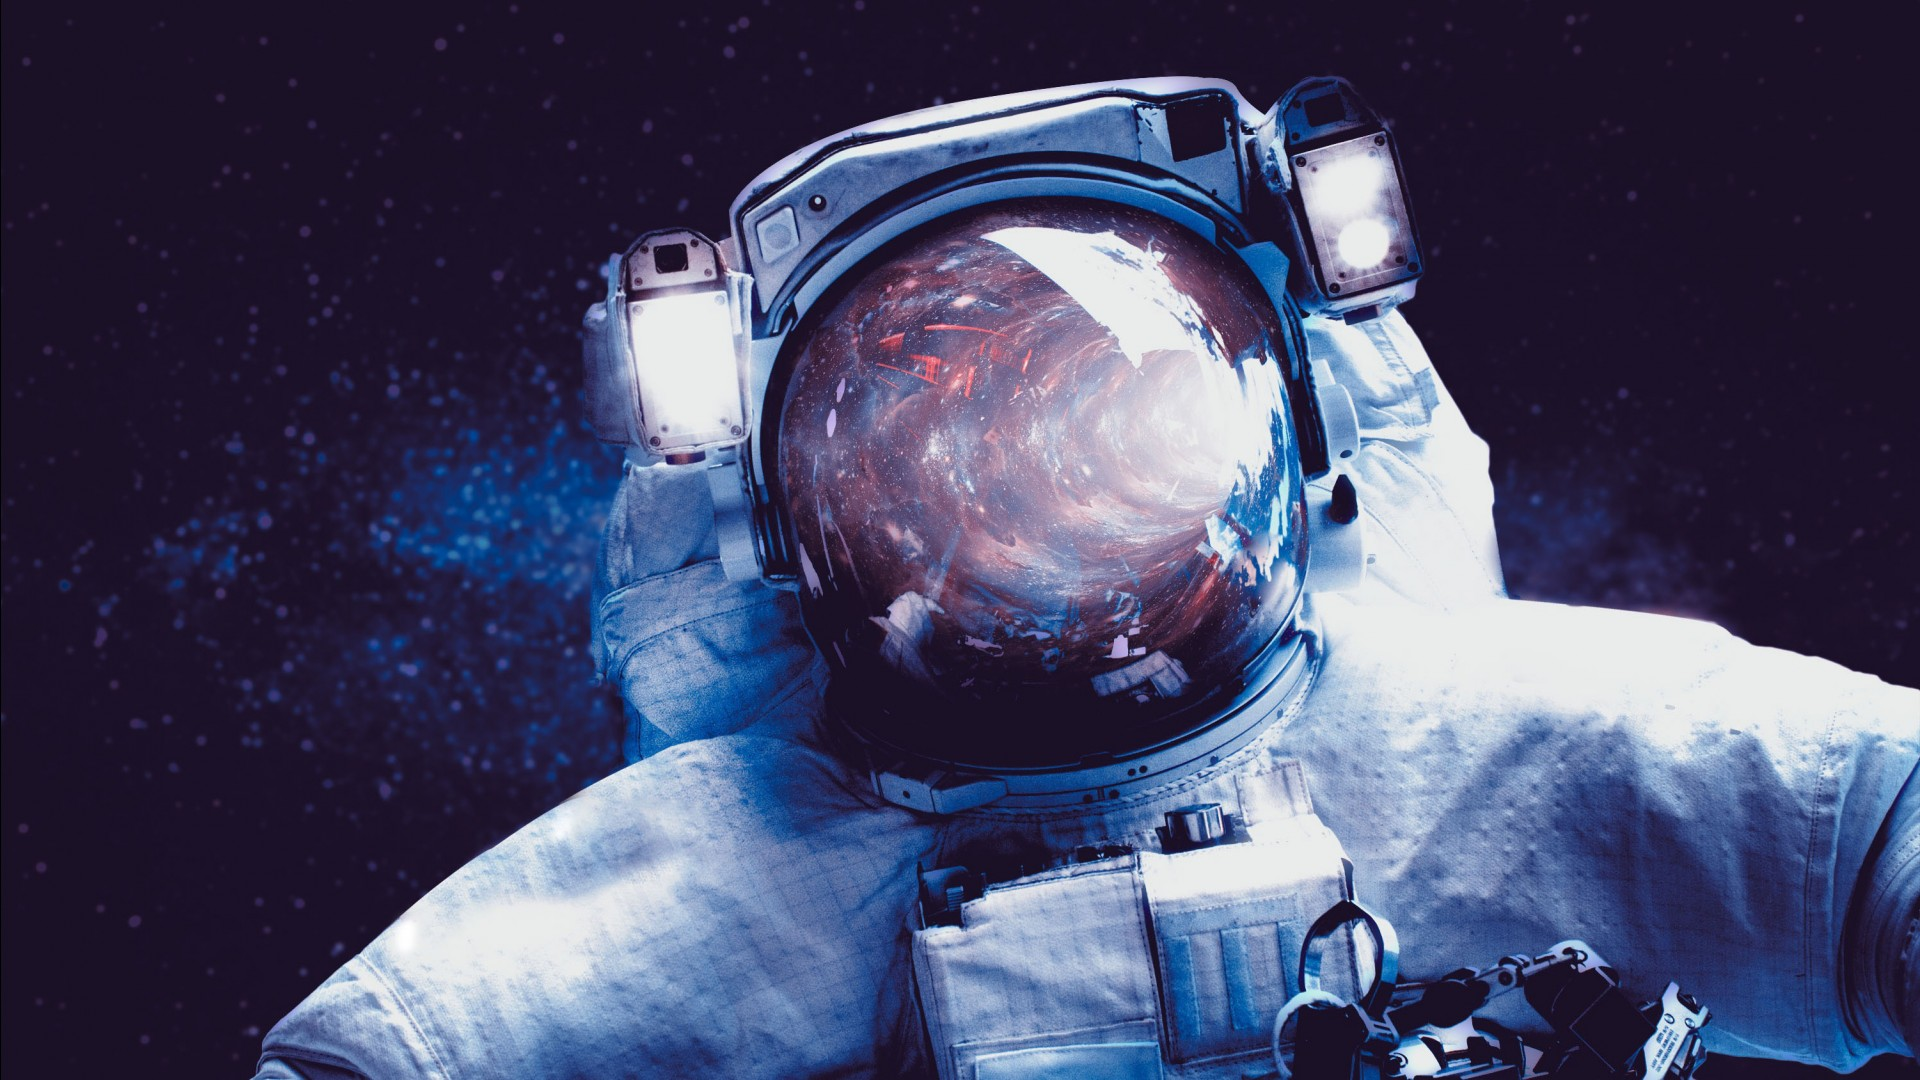 Cool Anime Wallpaper 3d Astronaut Wallpapers Hd Wallpapers Id 25916